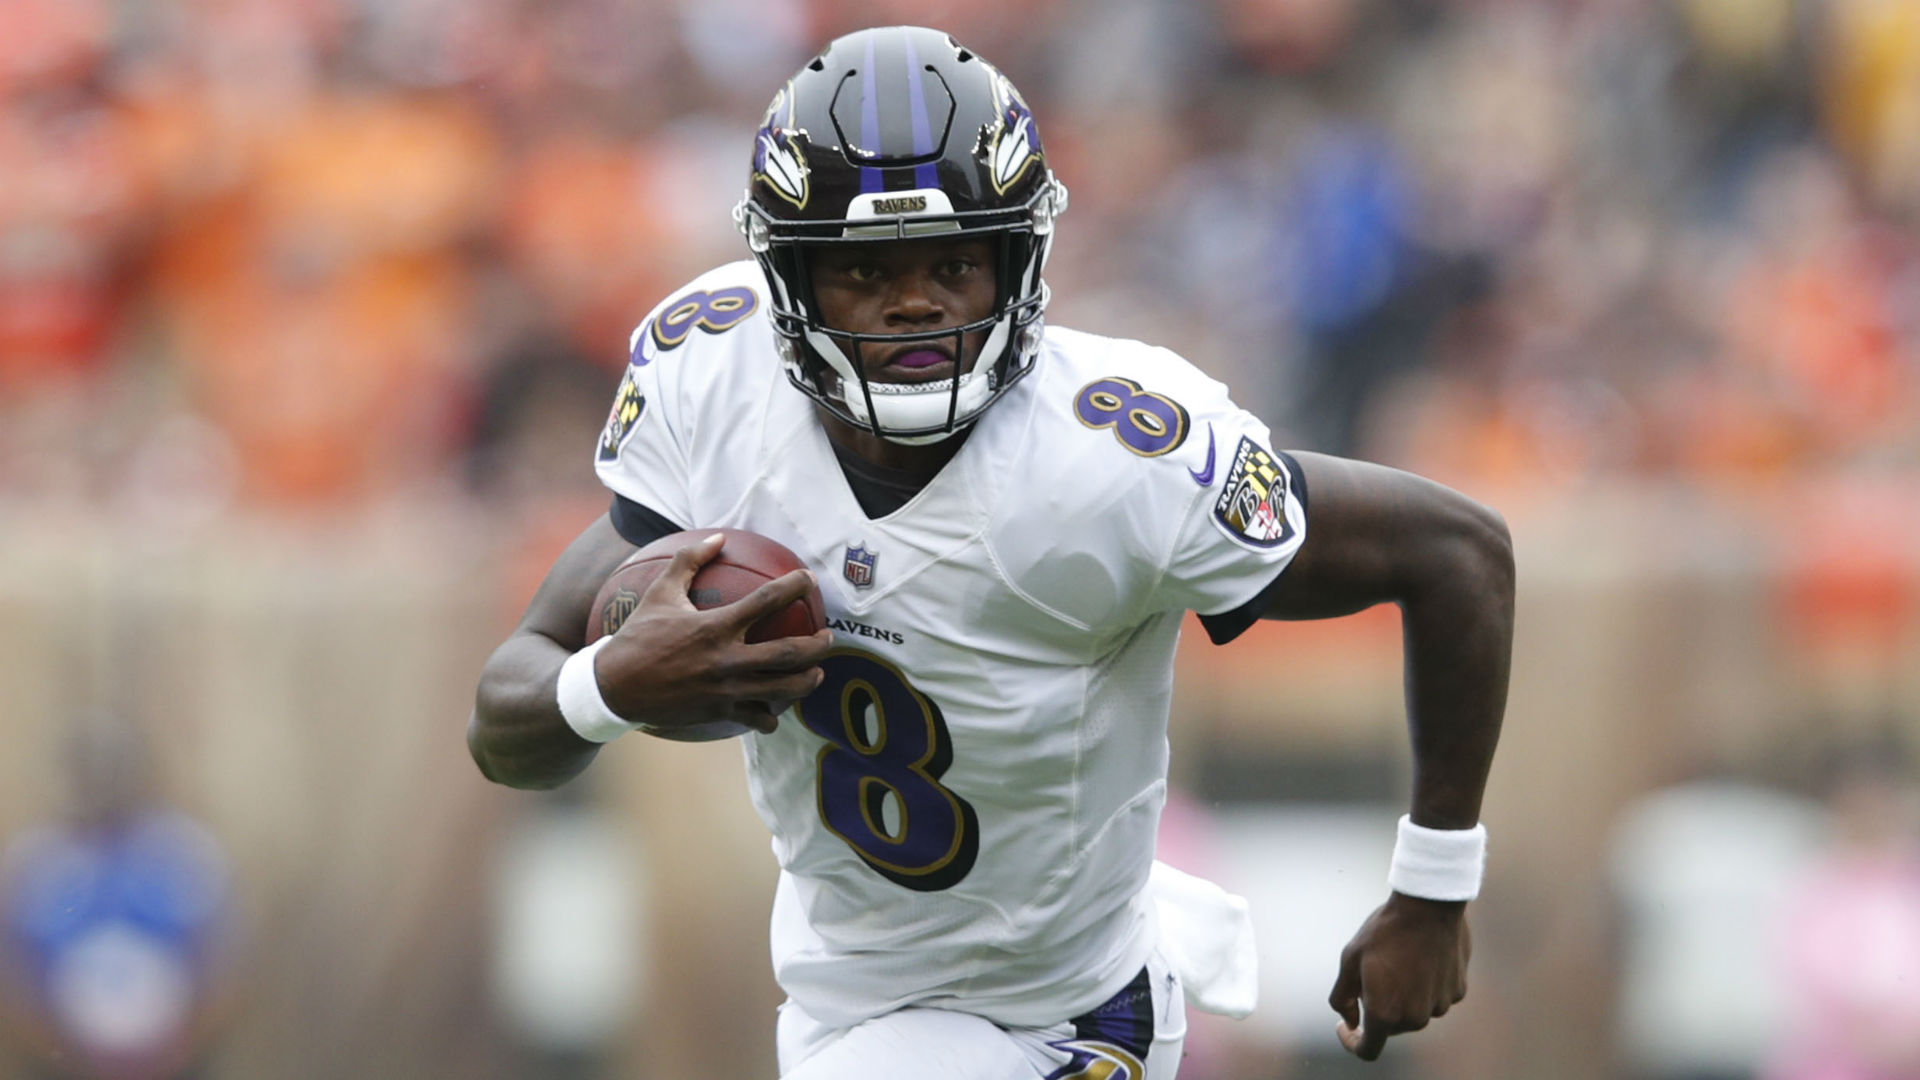 Ravens QB Jackson returns after concussion evaluation